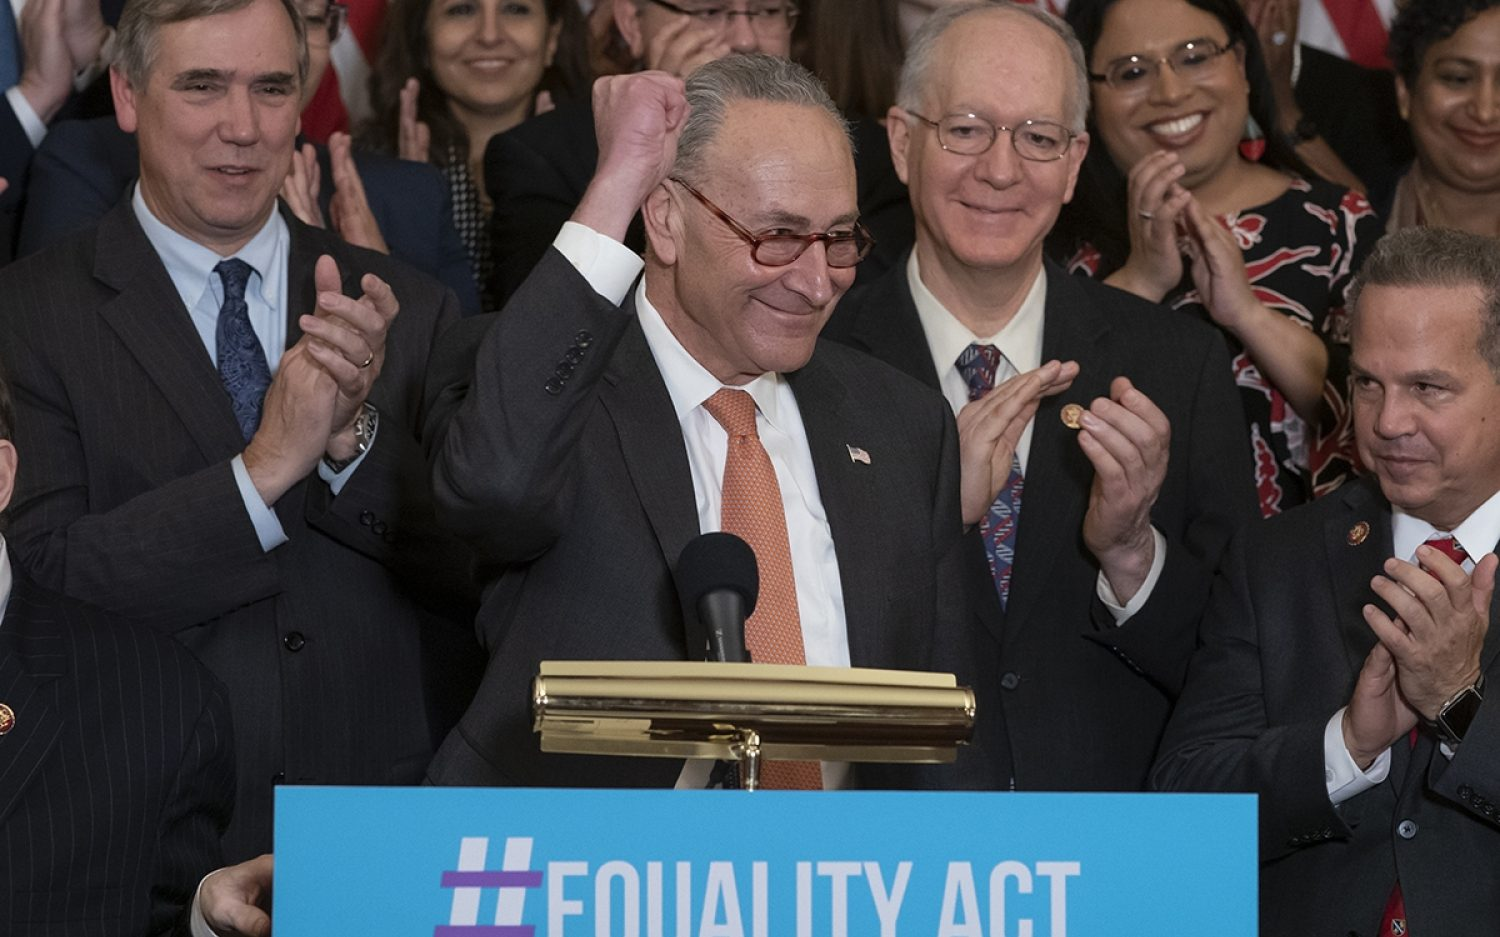 The misleadingly named Equality Act resurfaces